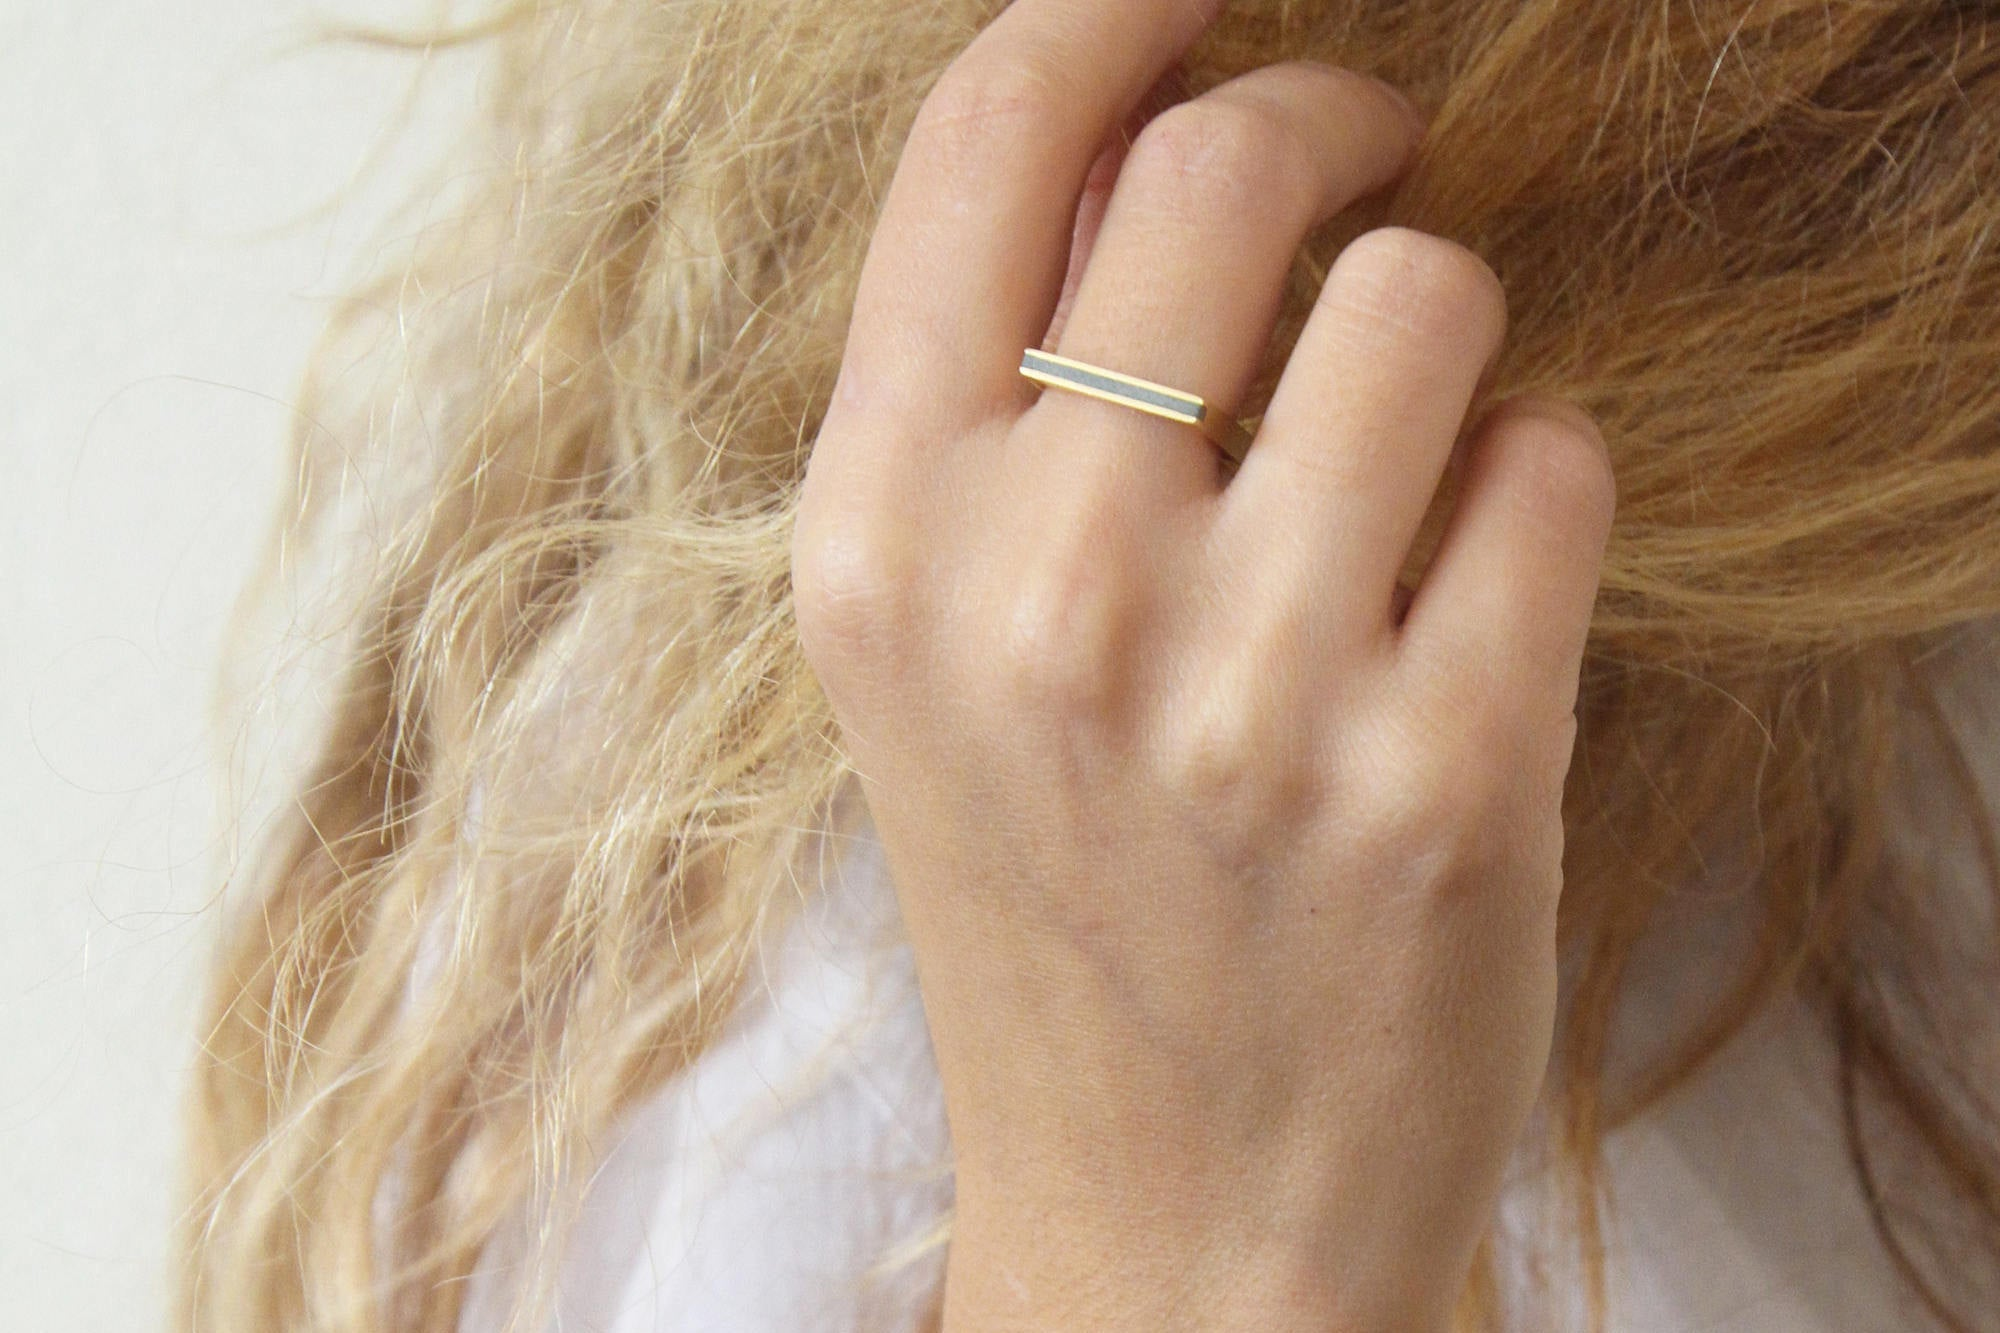 Square Gold Modern Ring With Delicate Concrete Line - hs